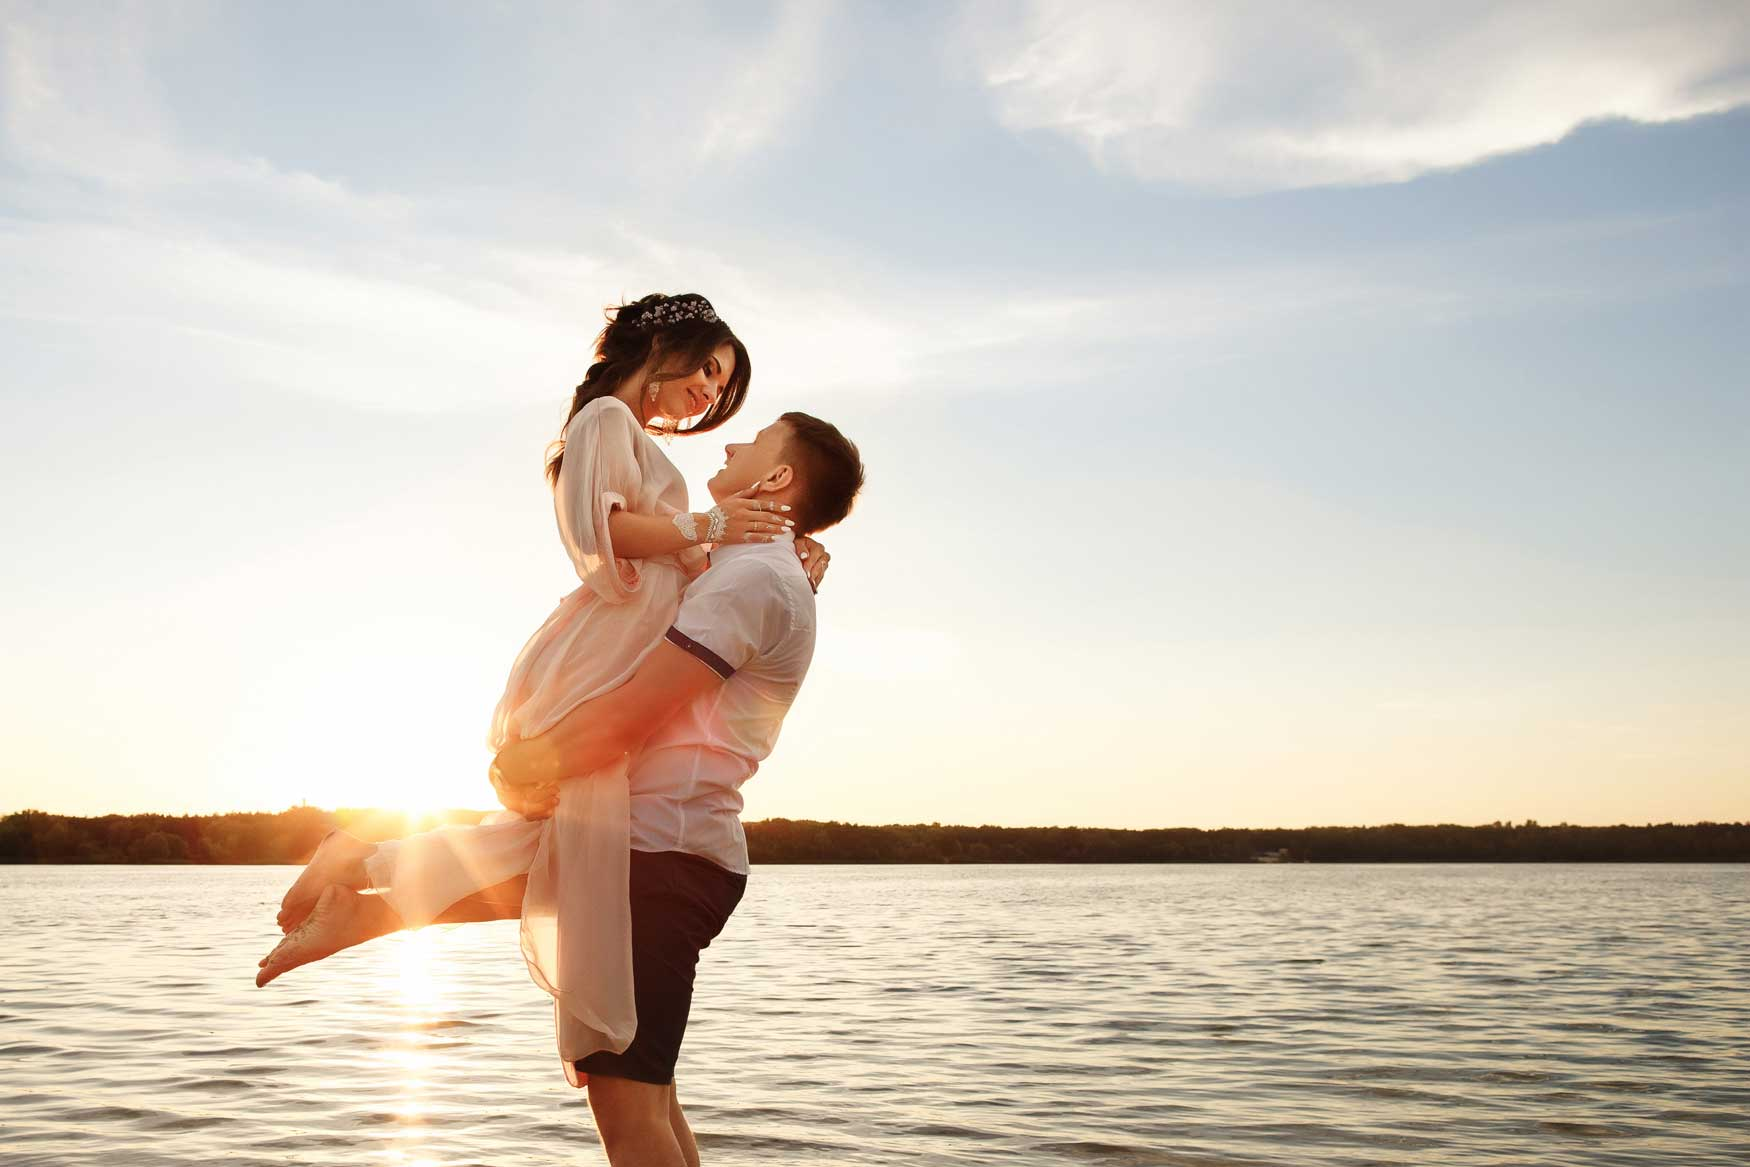 best-honeymoon-destinations-in-the-world-newlyweds-happy-together-at-the-beach-sunset